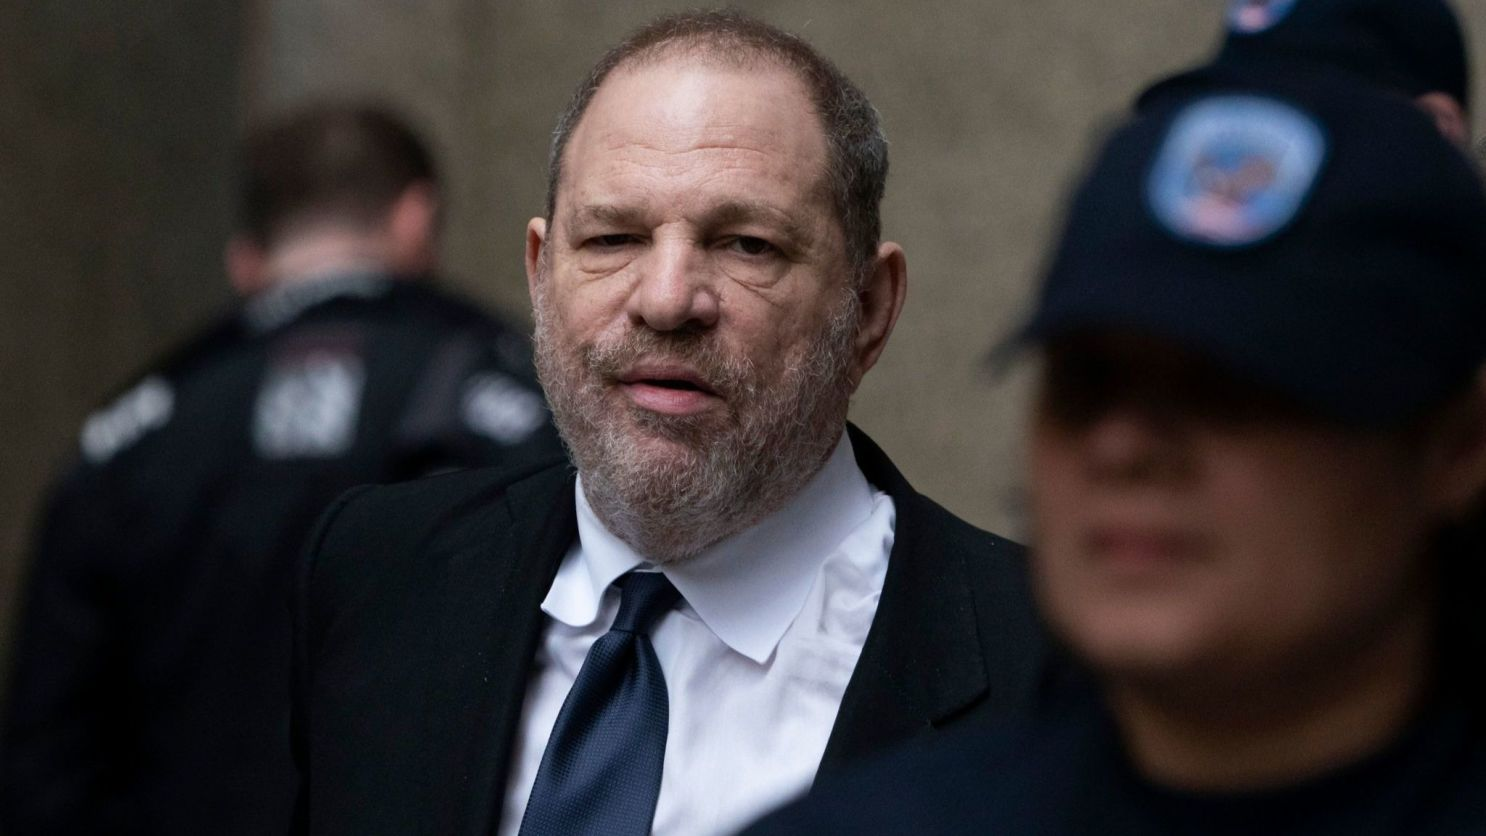 harvey-weinstein-guilty-rape-kaka-footballer-killed-sars-hazard-injured-latest-news-global-world-stories-monday-february-2020-style-rave